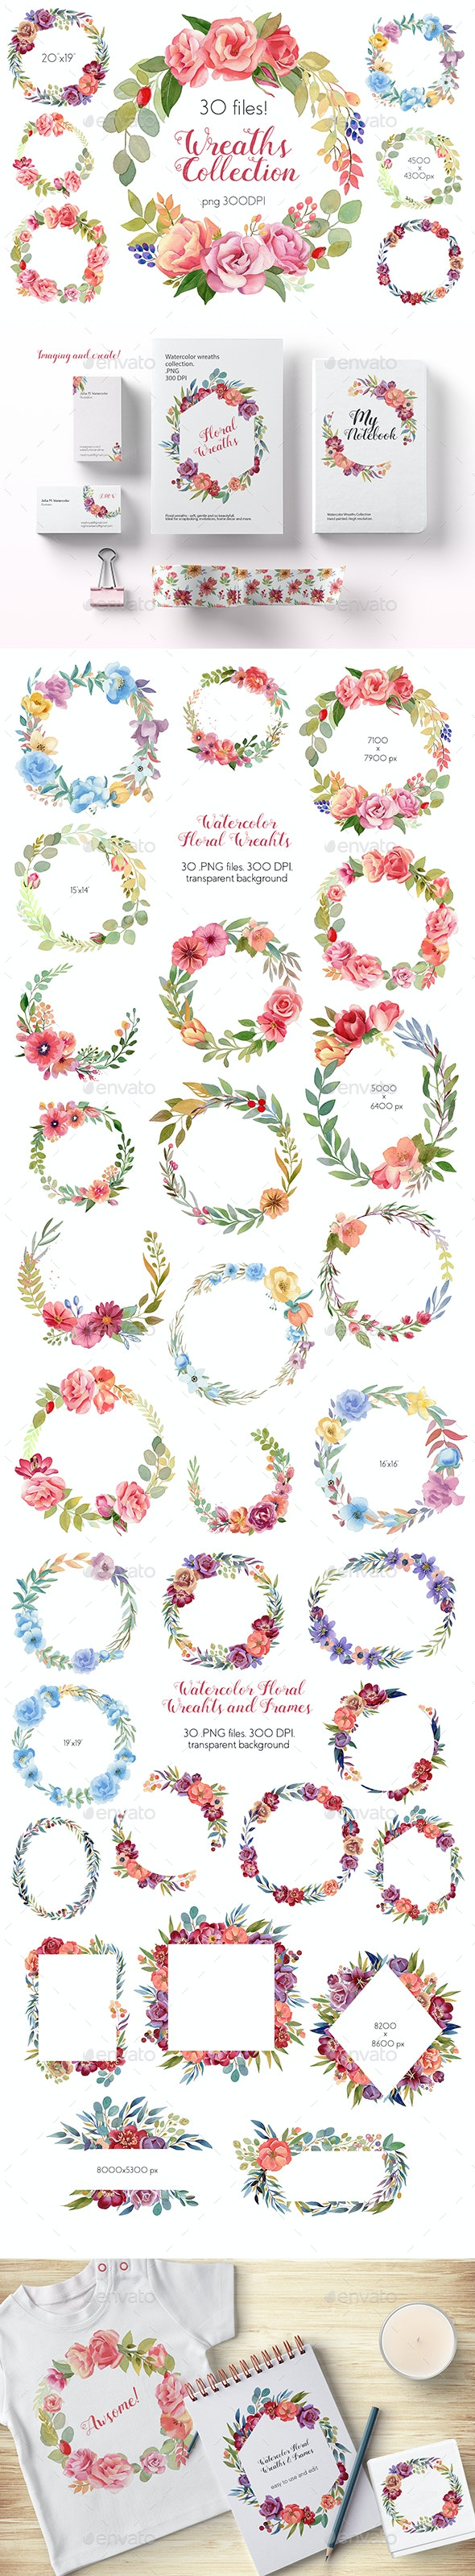 Watercolor Wreaths Collection (Set) - Objects Illustrations